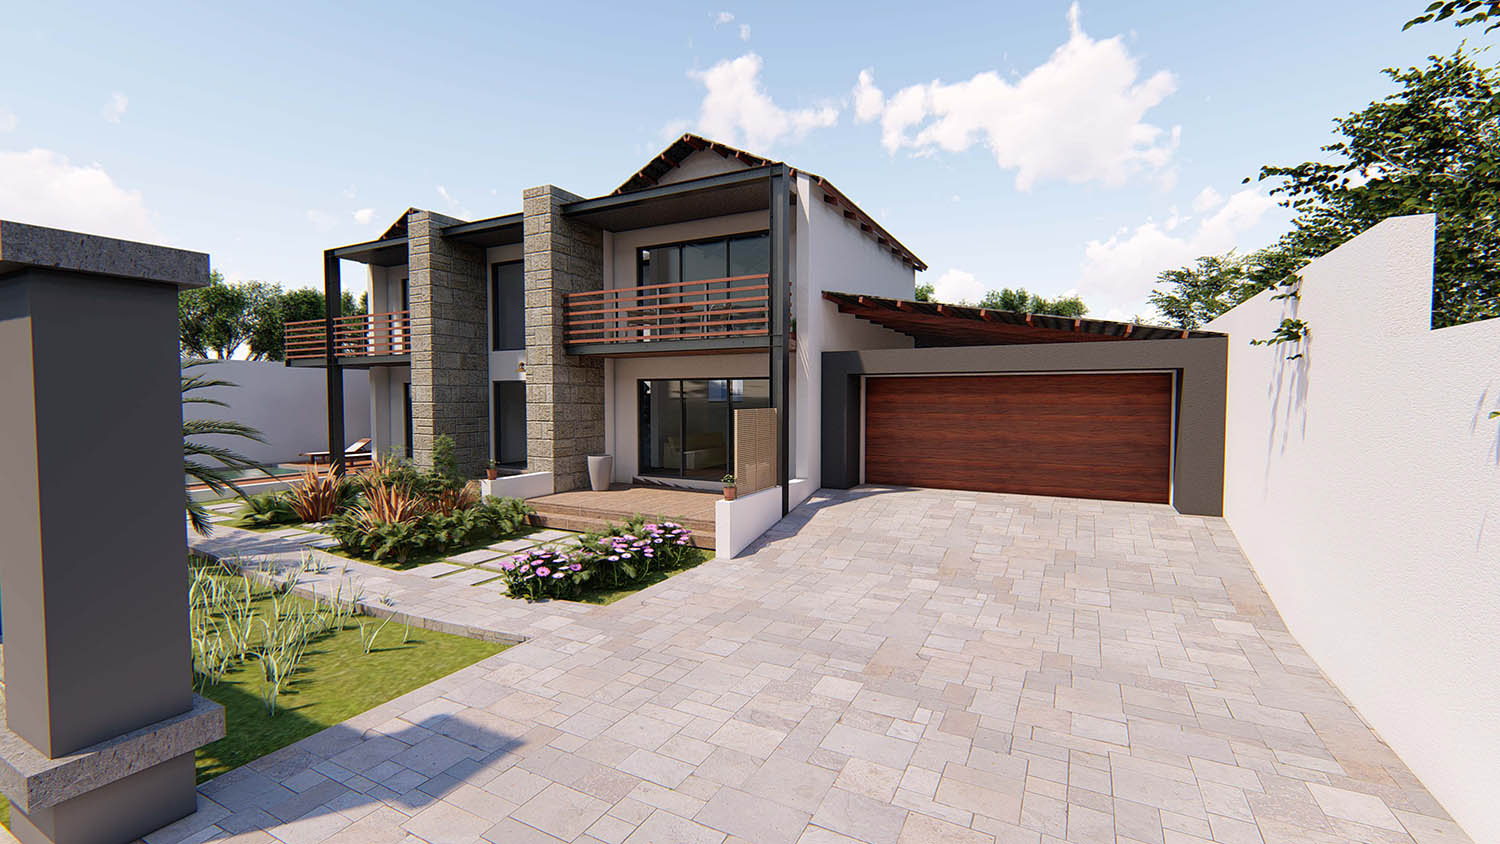 House Plans_Renovations and Alterations Montana 1